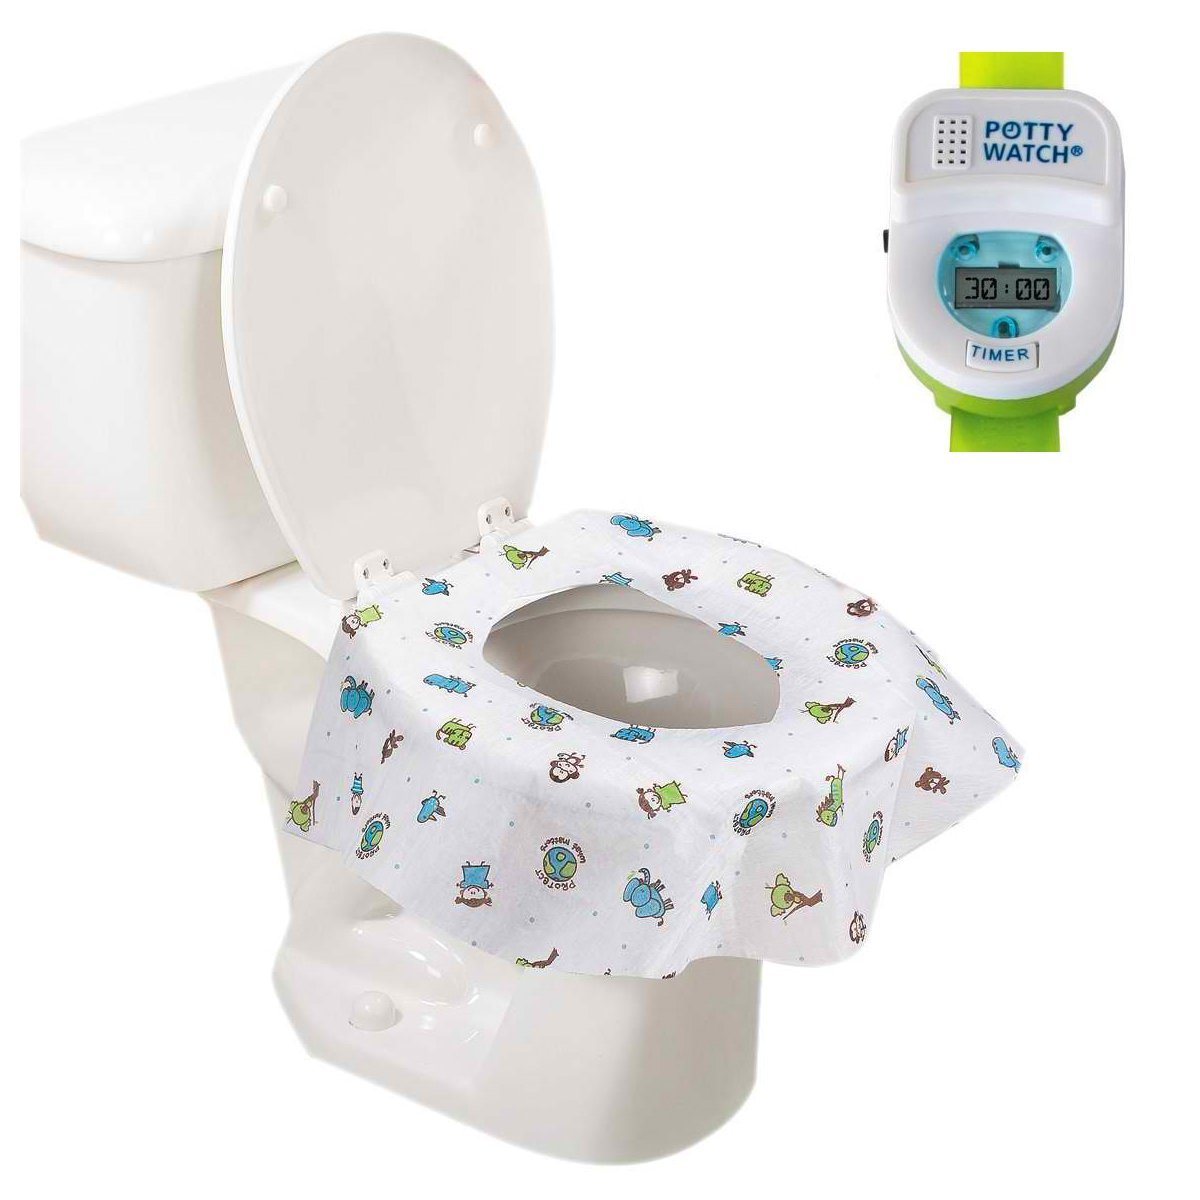 Potty Watch Potty Training Timer, Green with Potty Protectors, 20 Pack